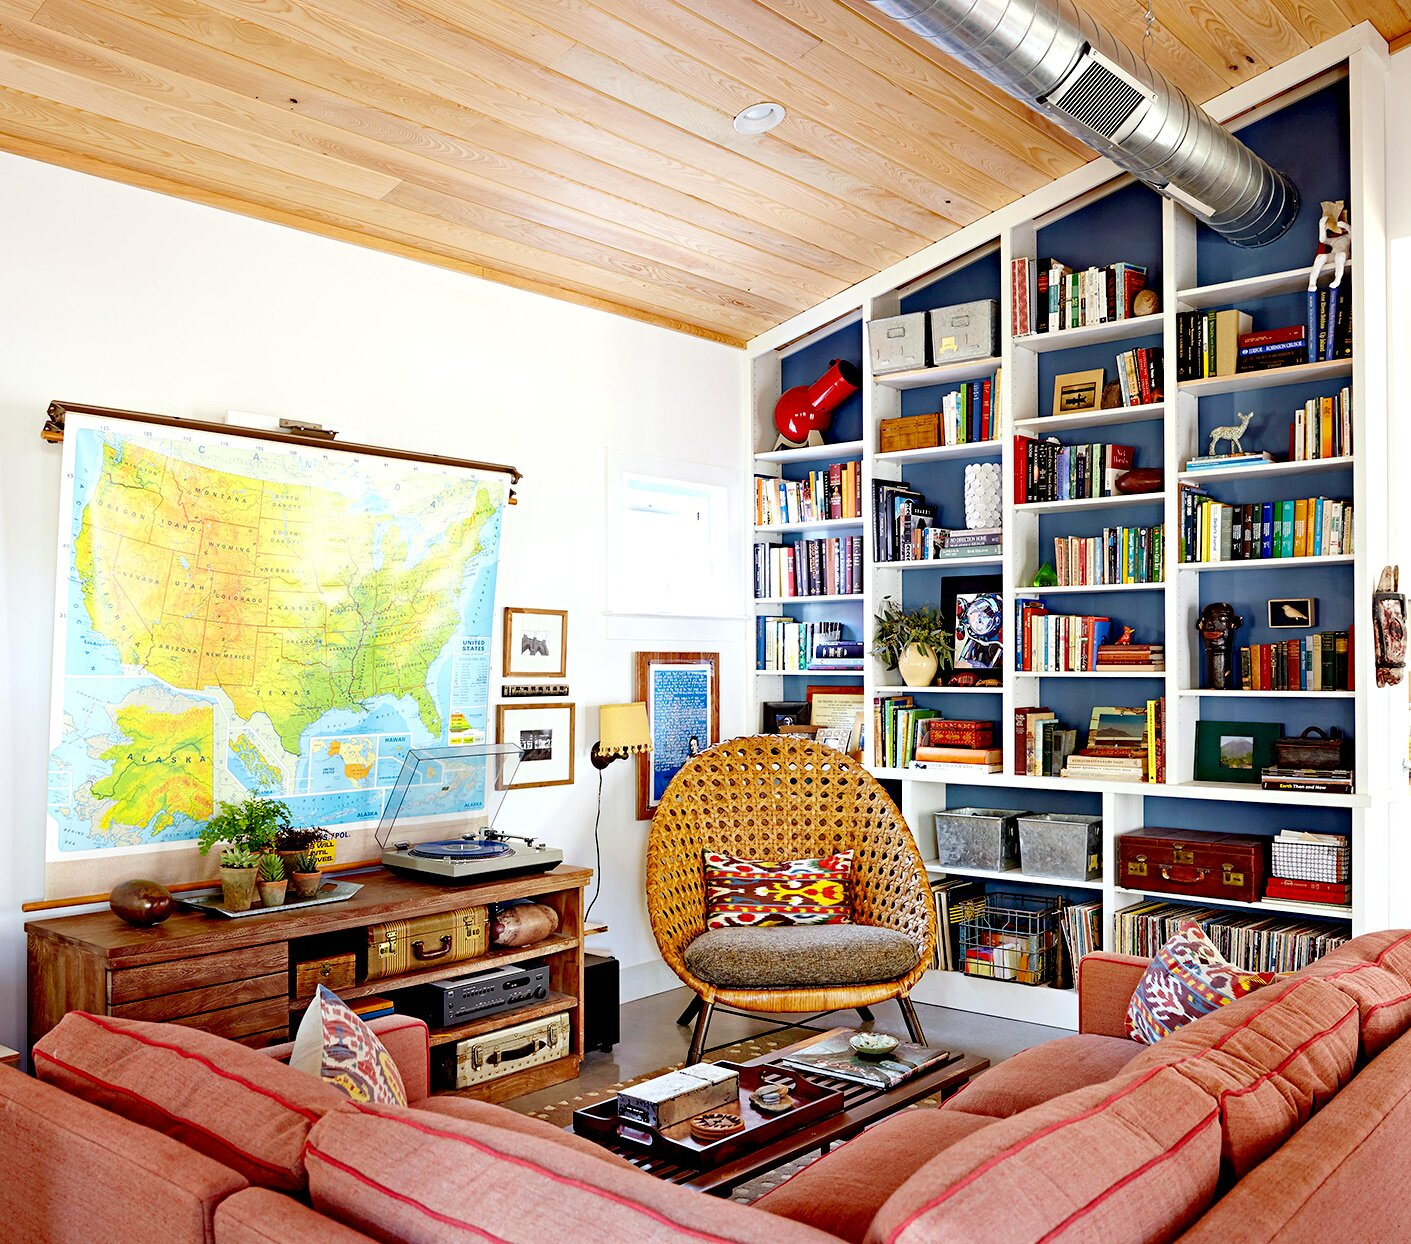 Living room with bookshelves and large USA map